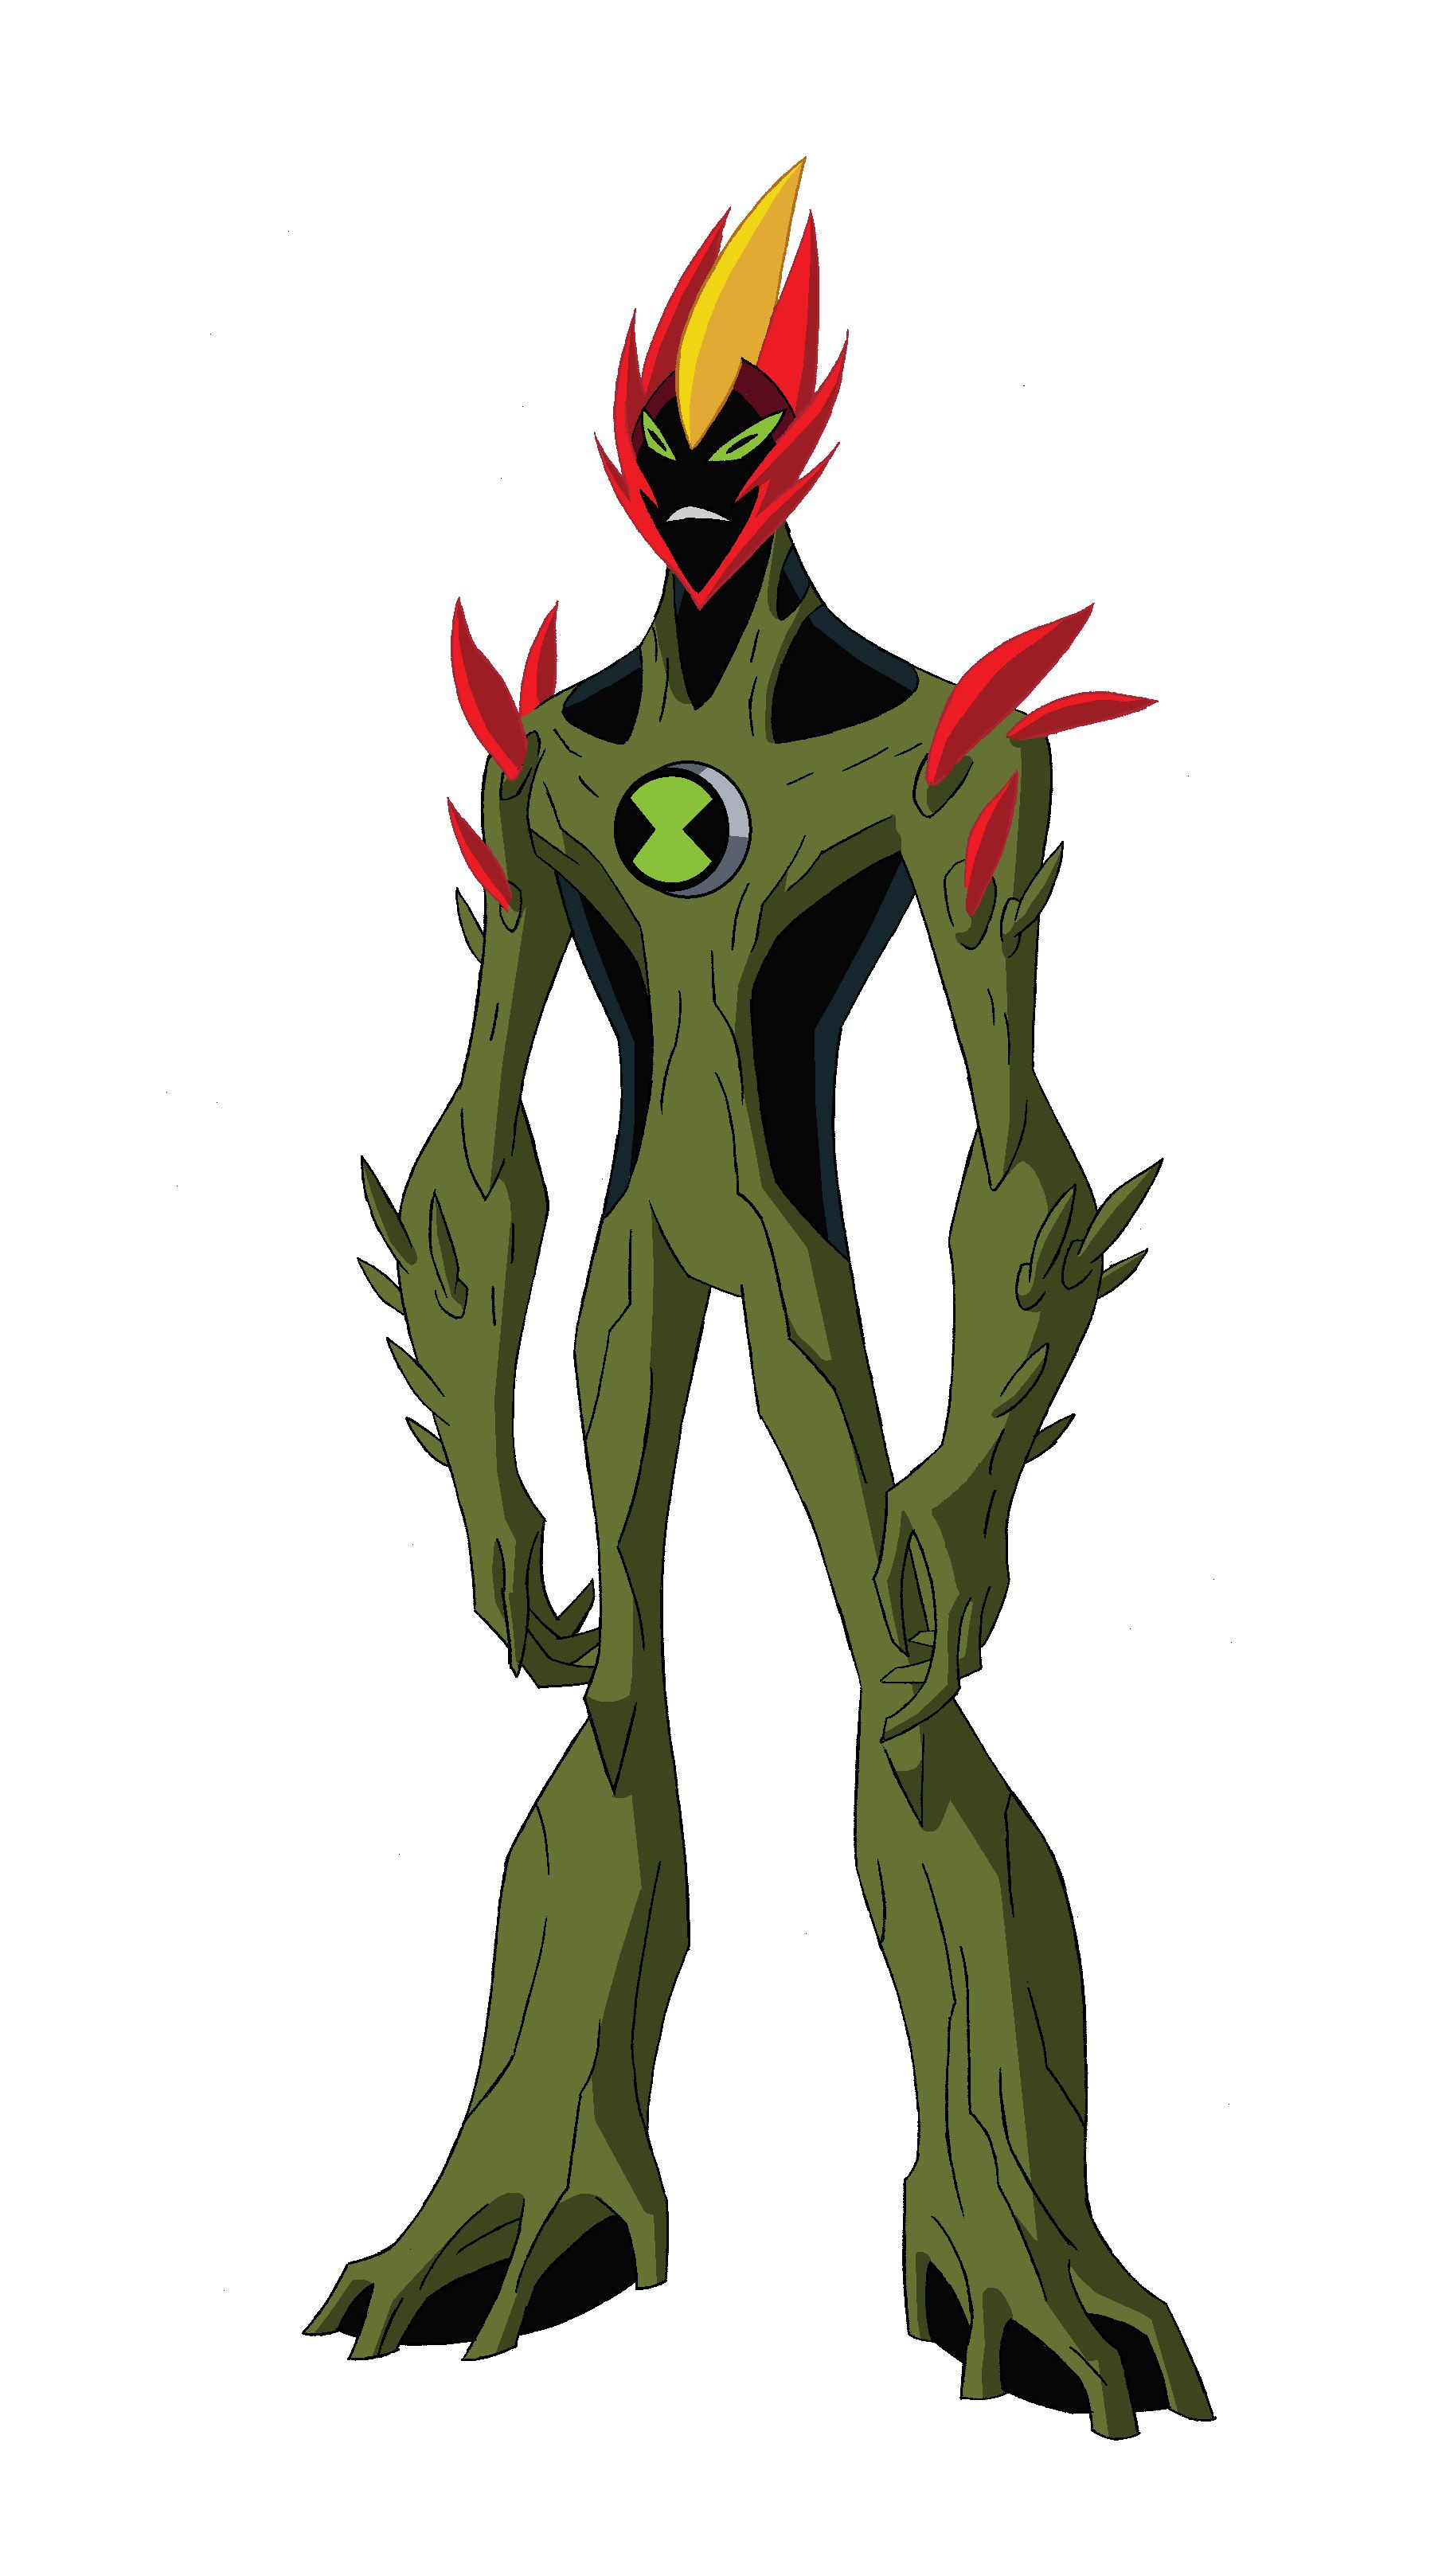 Ben 10 Alien Force Out Of This World Fun Ben 10 Ben 10 Alien Force Ben 10 Ultimate Alien